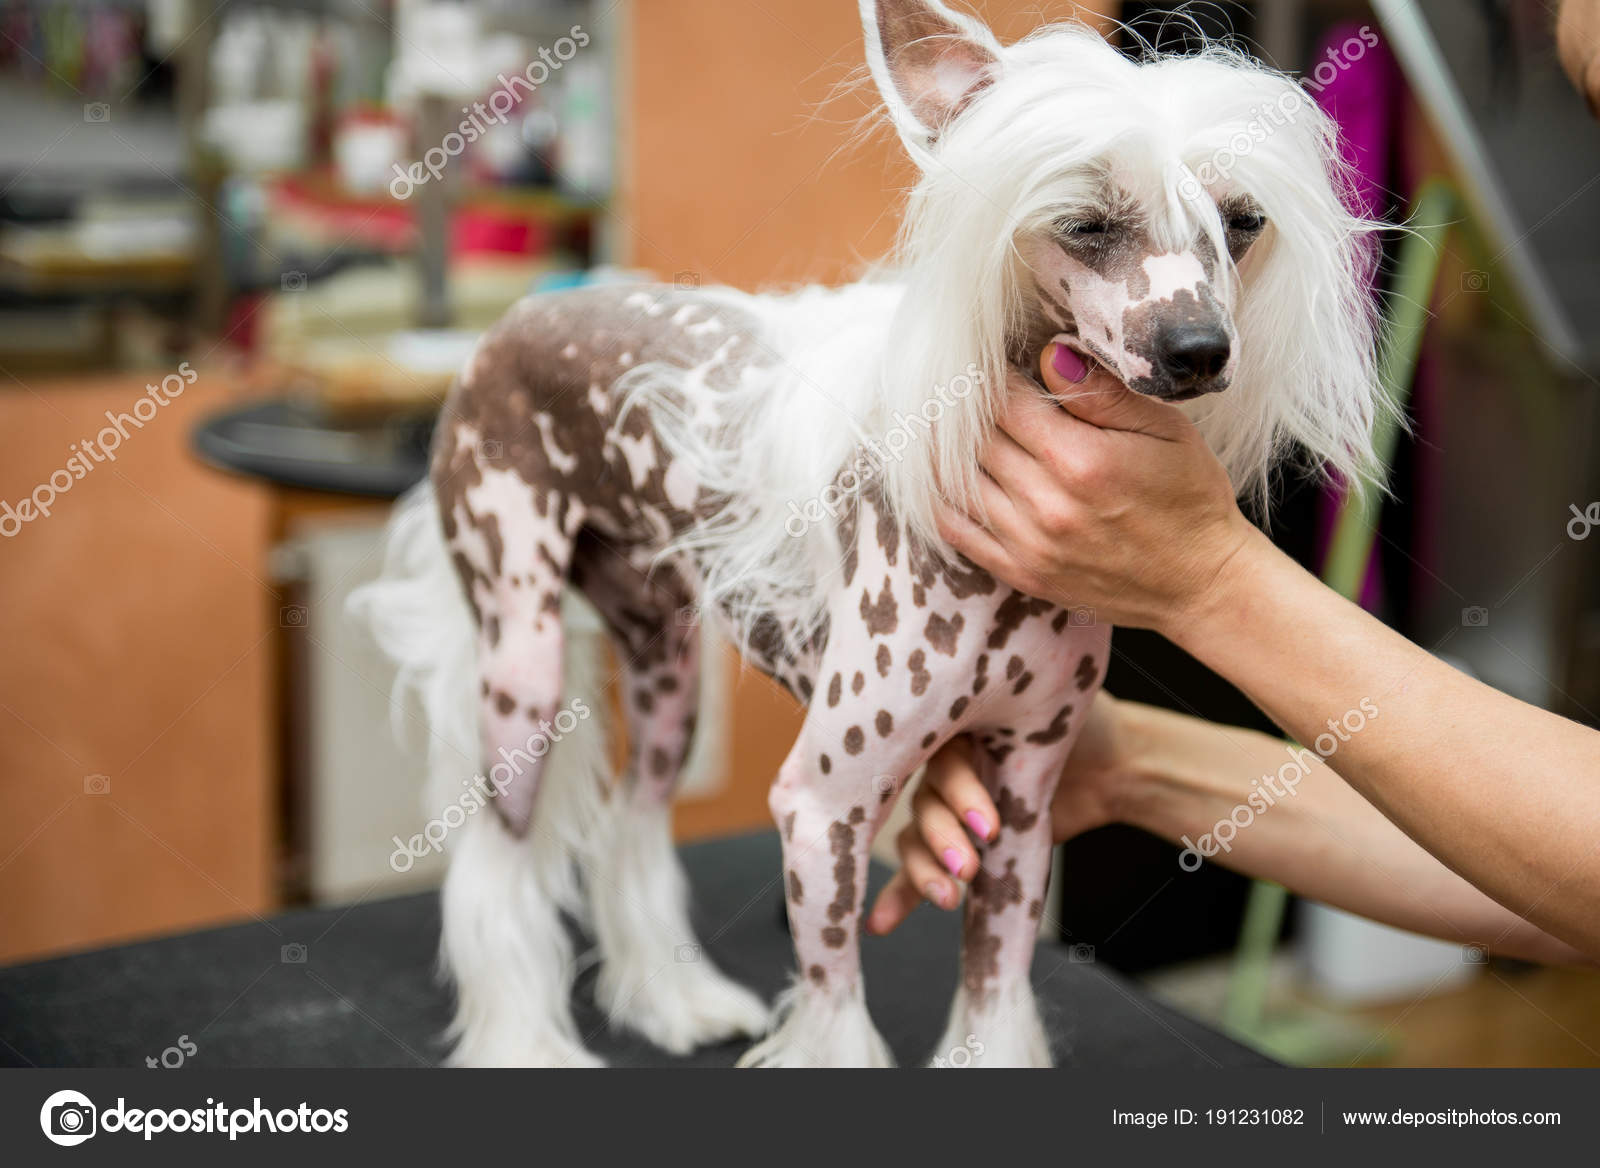 Breed Dog Grooming Chinese Crested Stock Photo Serg0403 191231082